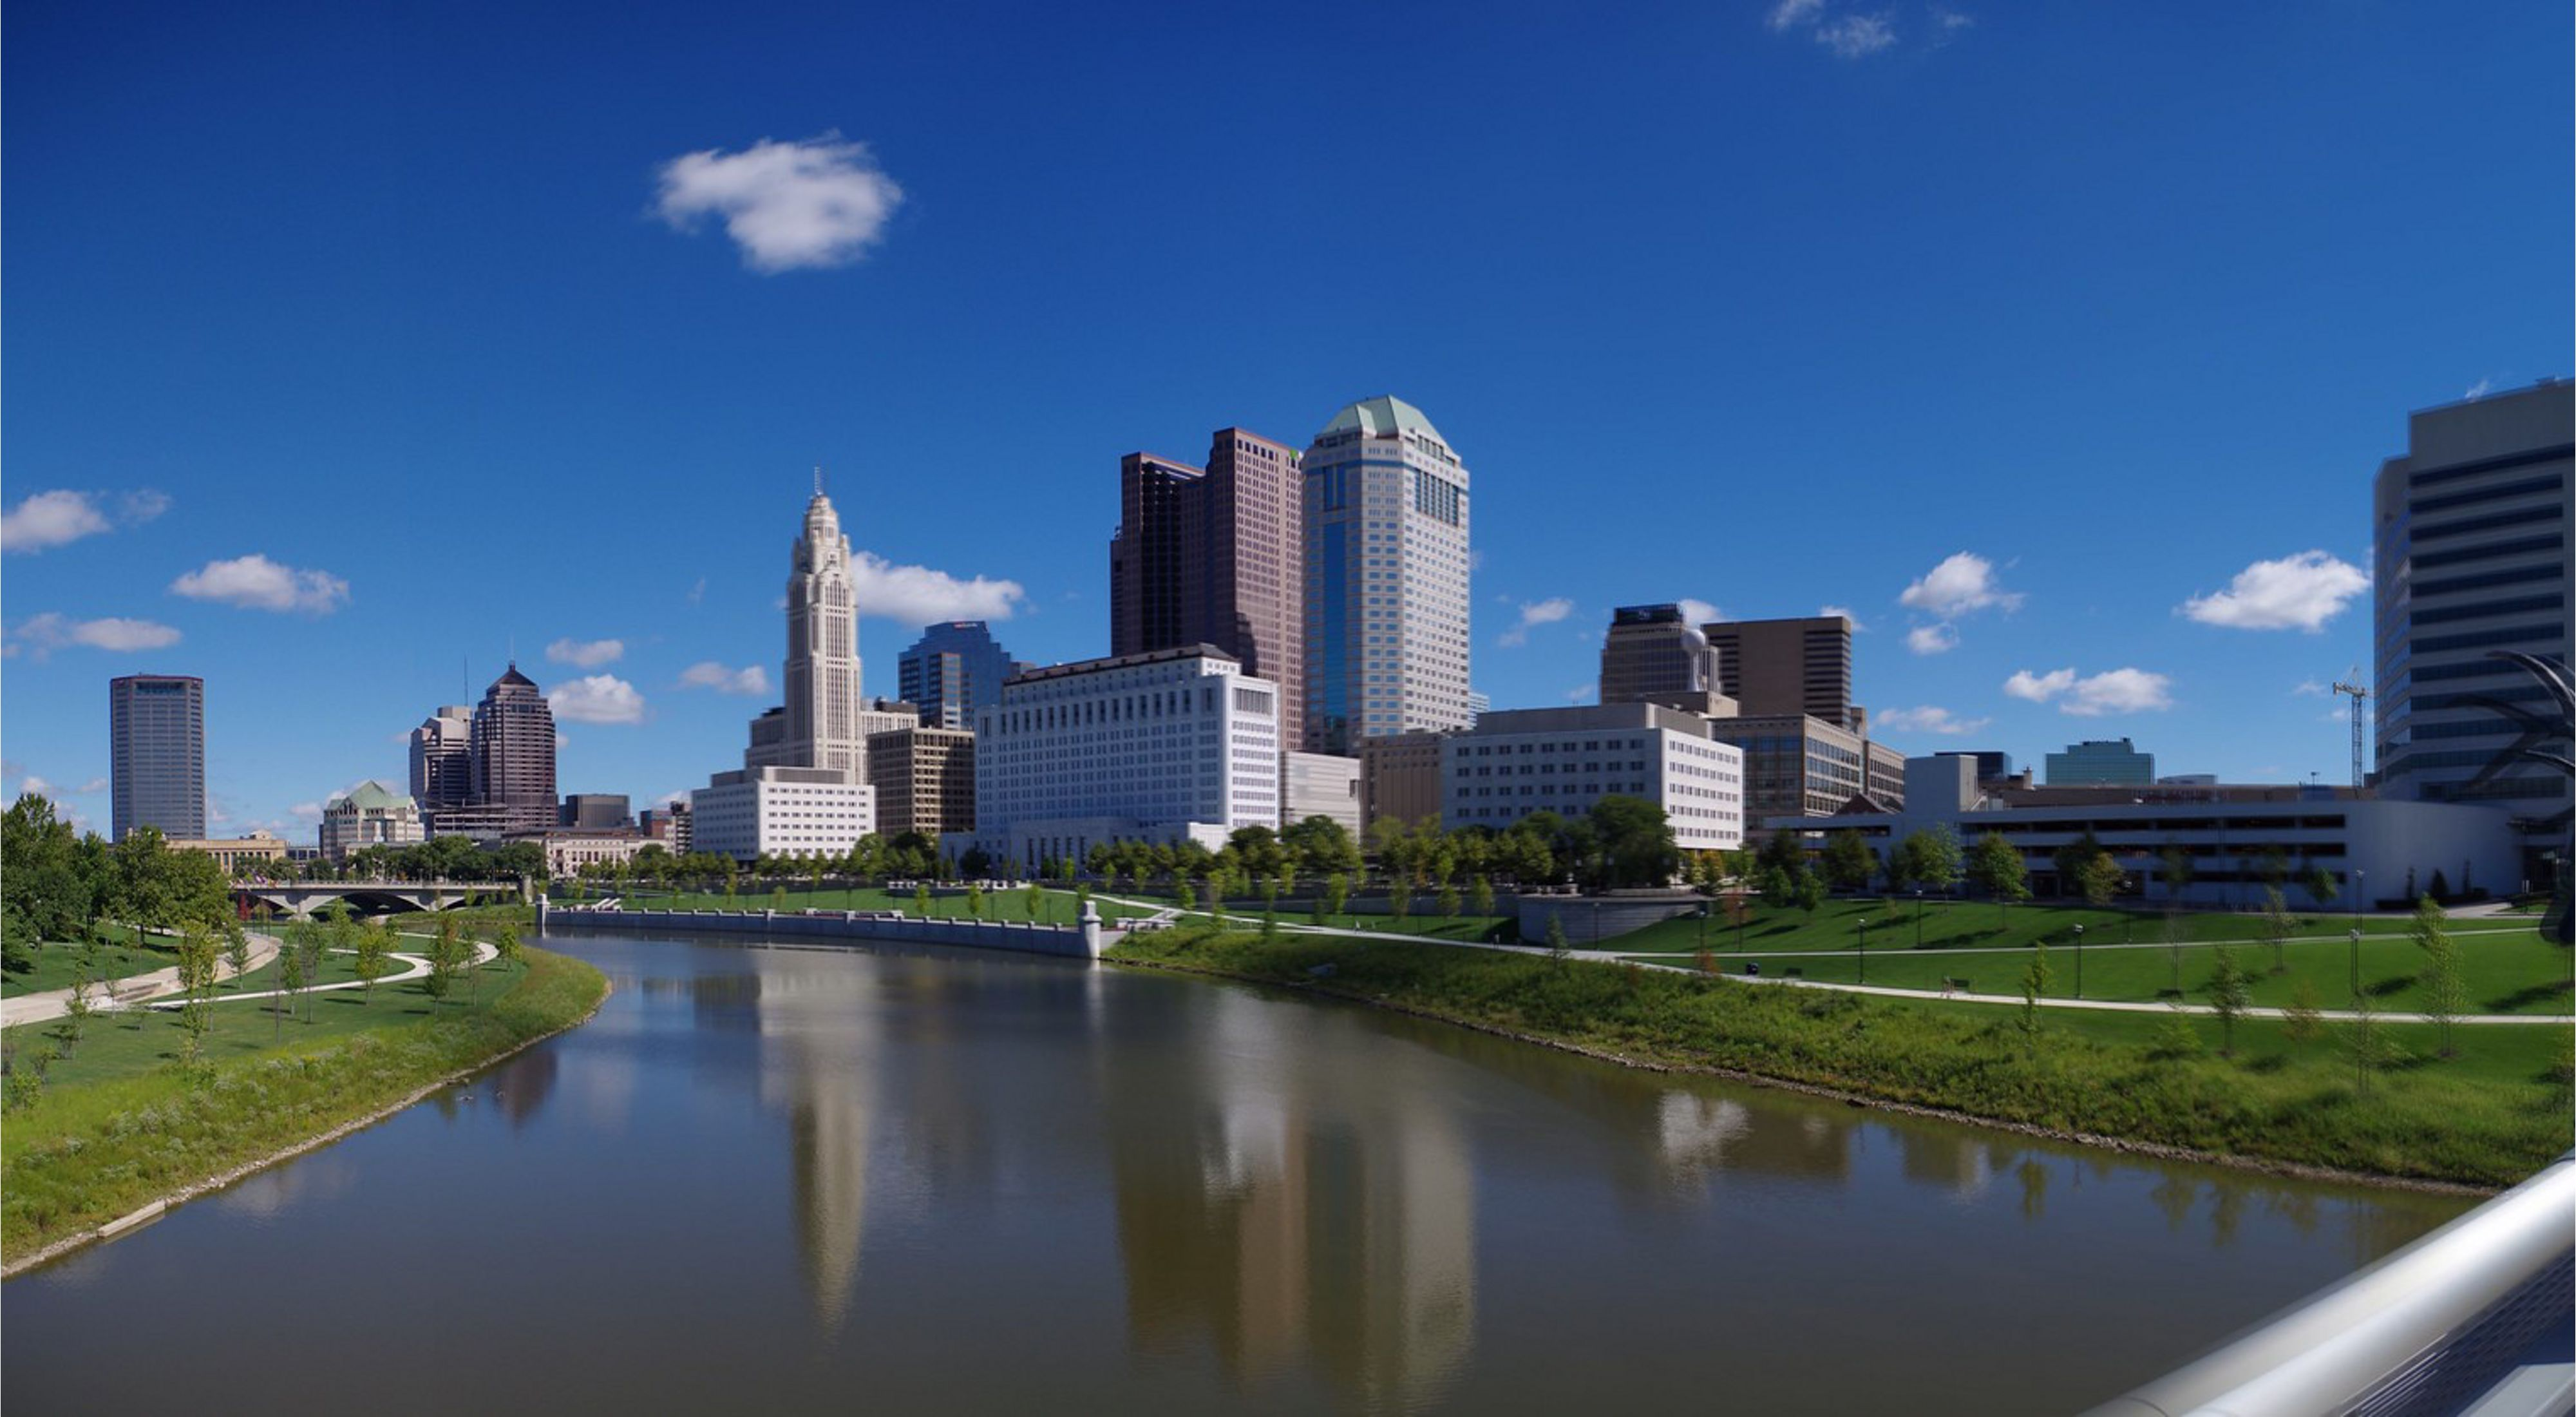 A bright blue sky is the backdrop for the city skyline, while a river flows diagonally across the foreground.